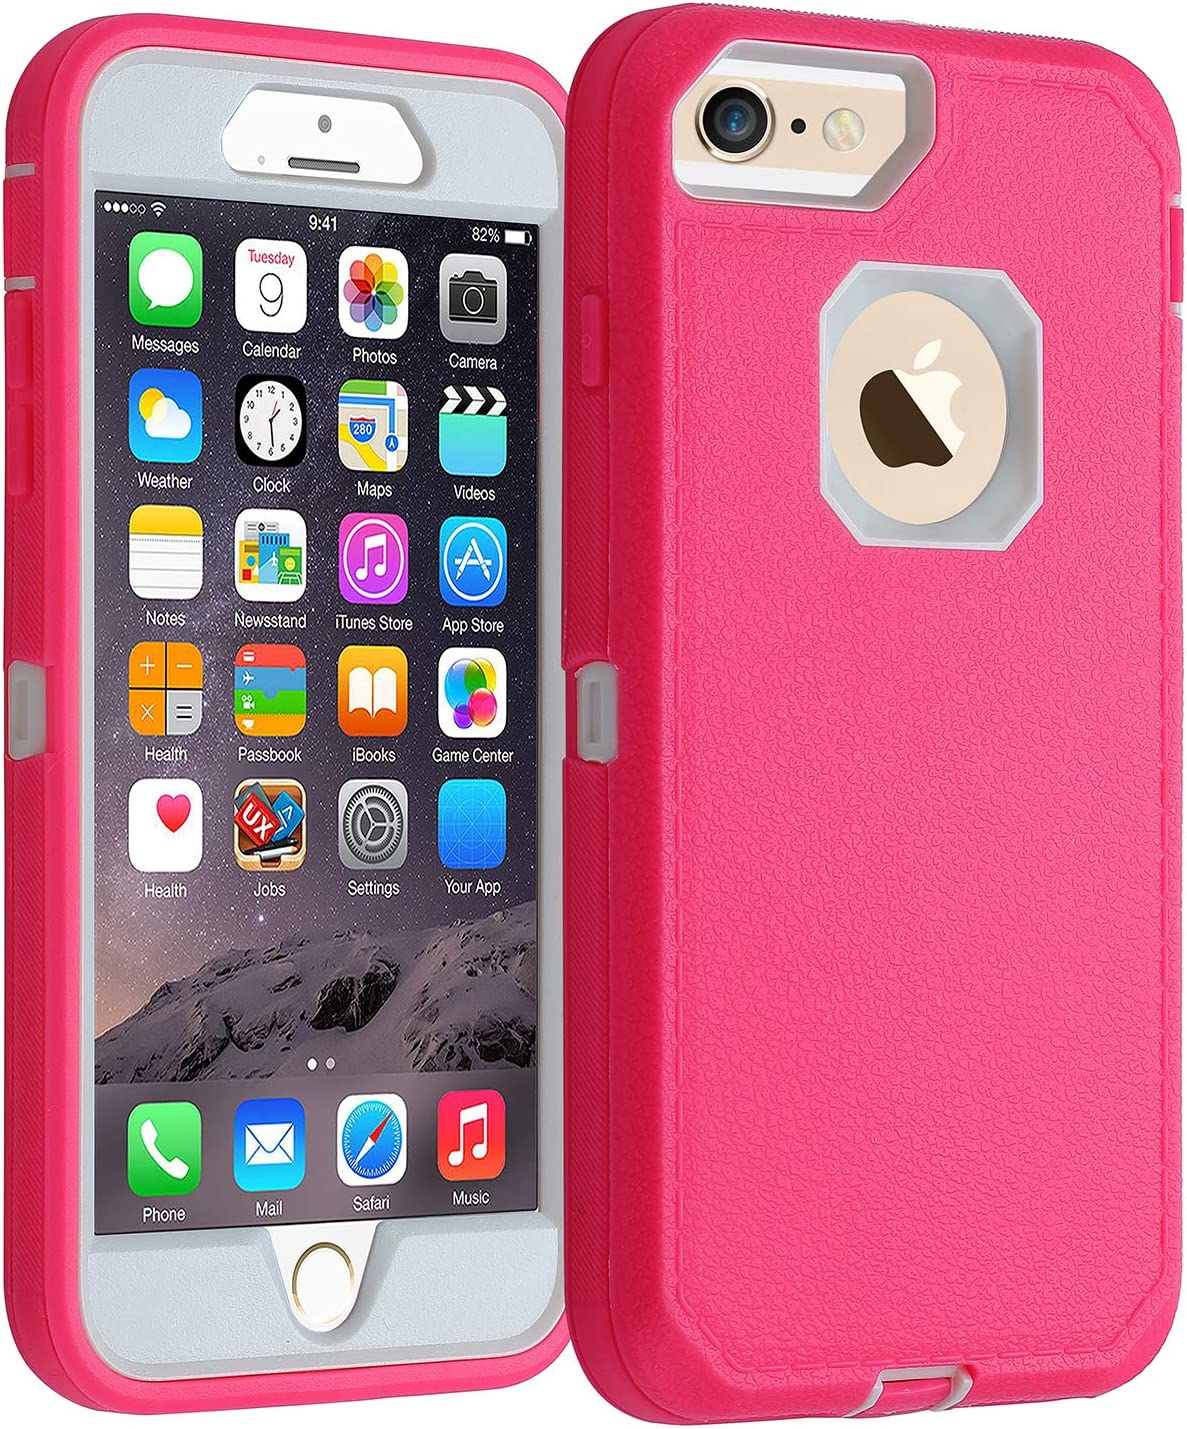 Co-Goldguard Case for iPhone 6/6s,[Heavy Duty] [Litchi Pattern Series] 3 in 1 Durable Cover with with Screen Bumper Shockproof Drop-Proof Shell Case for Apple iPhone 6/6s 4.7 inch (Pink&White)